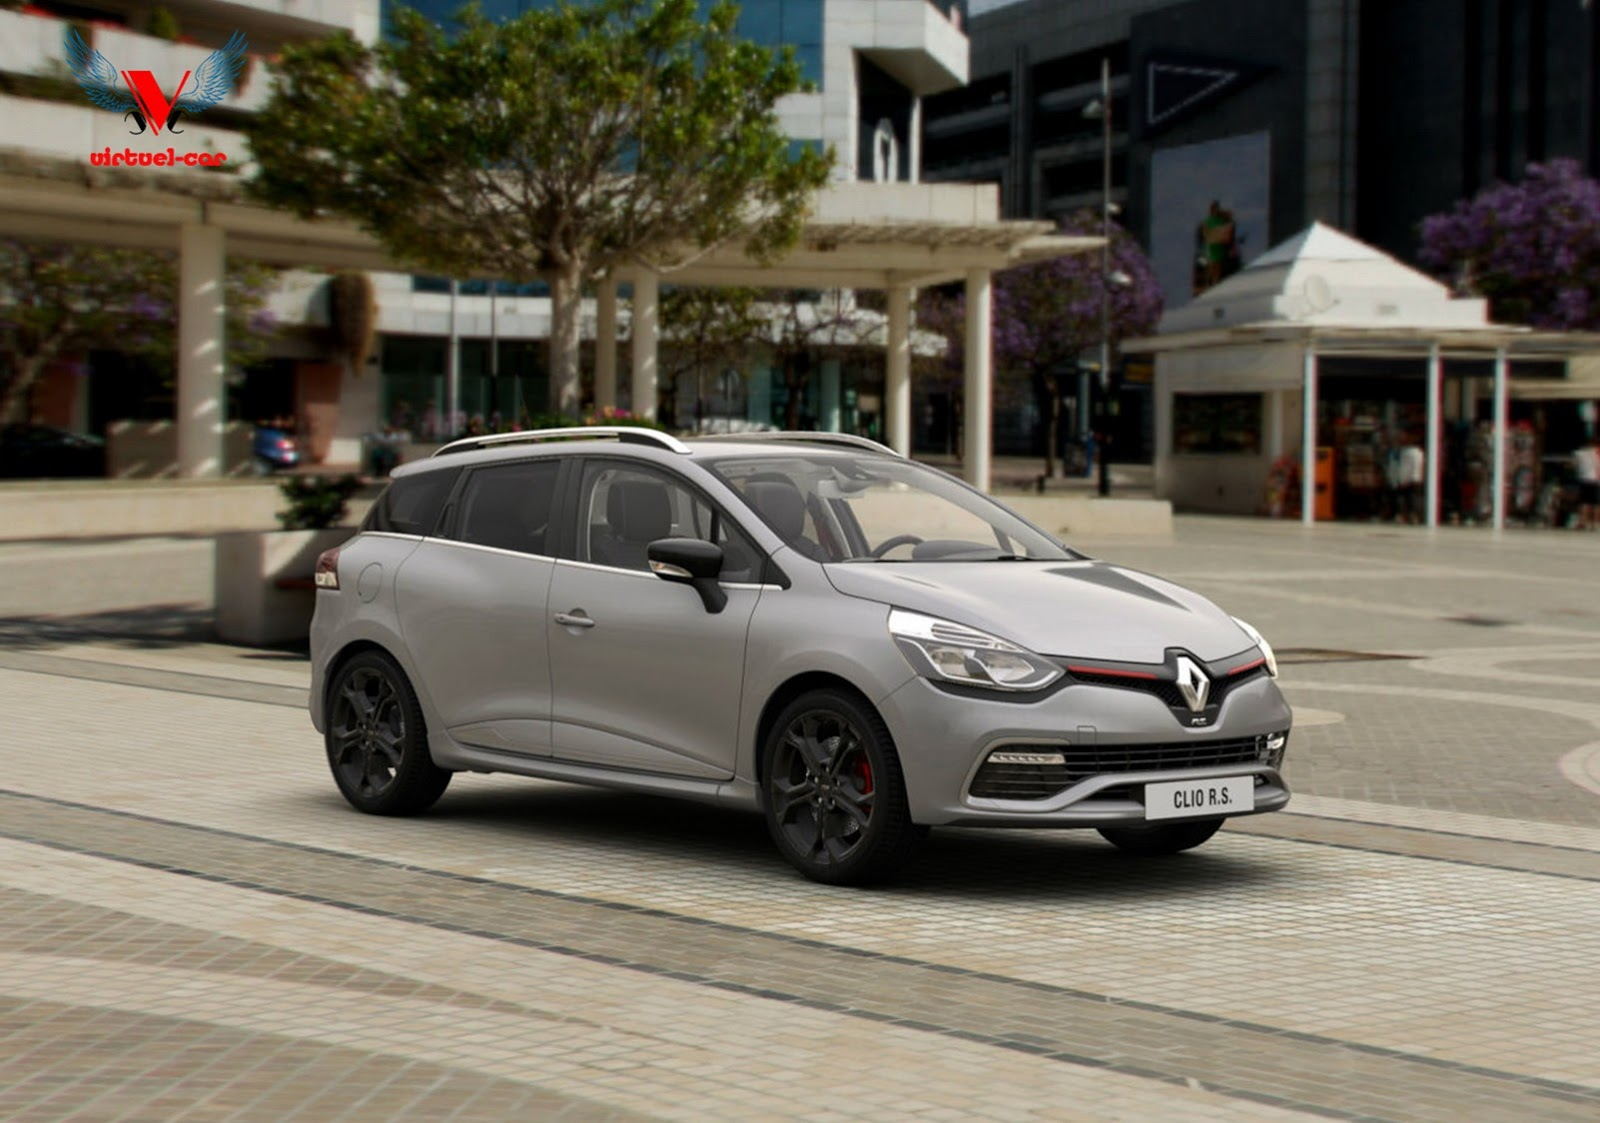 new renault clio estate engine range and prices announced. Black Bedroom Furniture Sets. Home Design Ideas